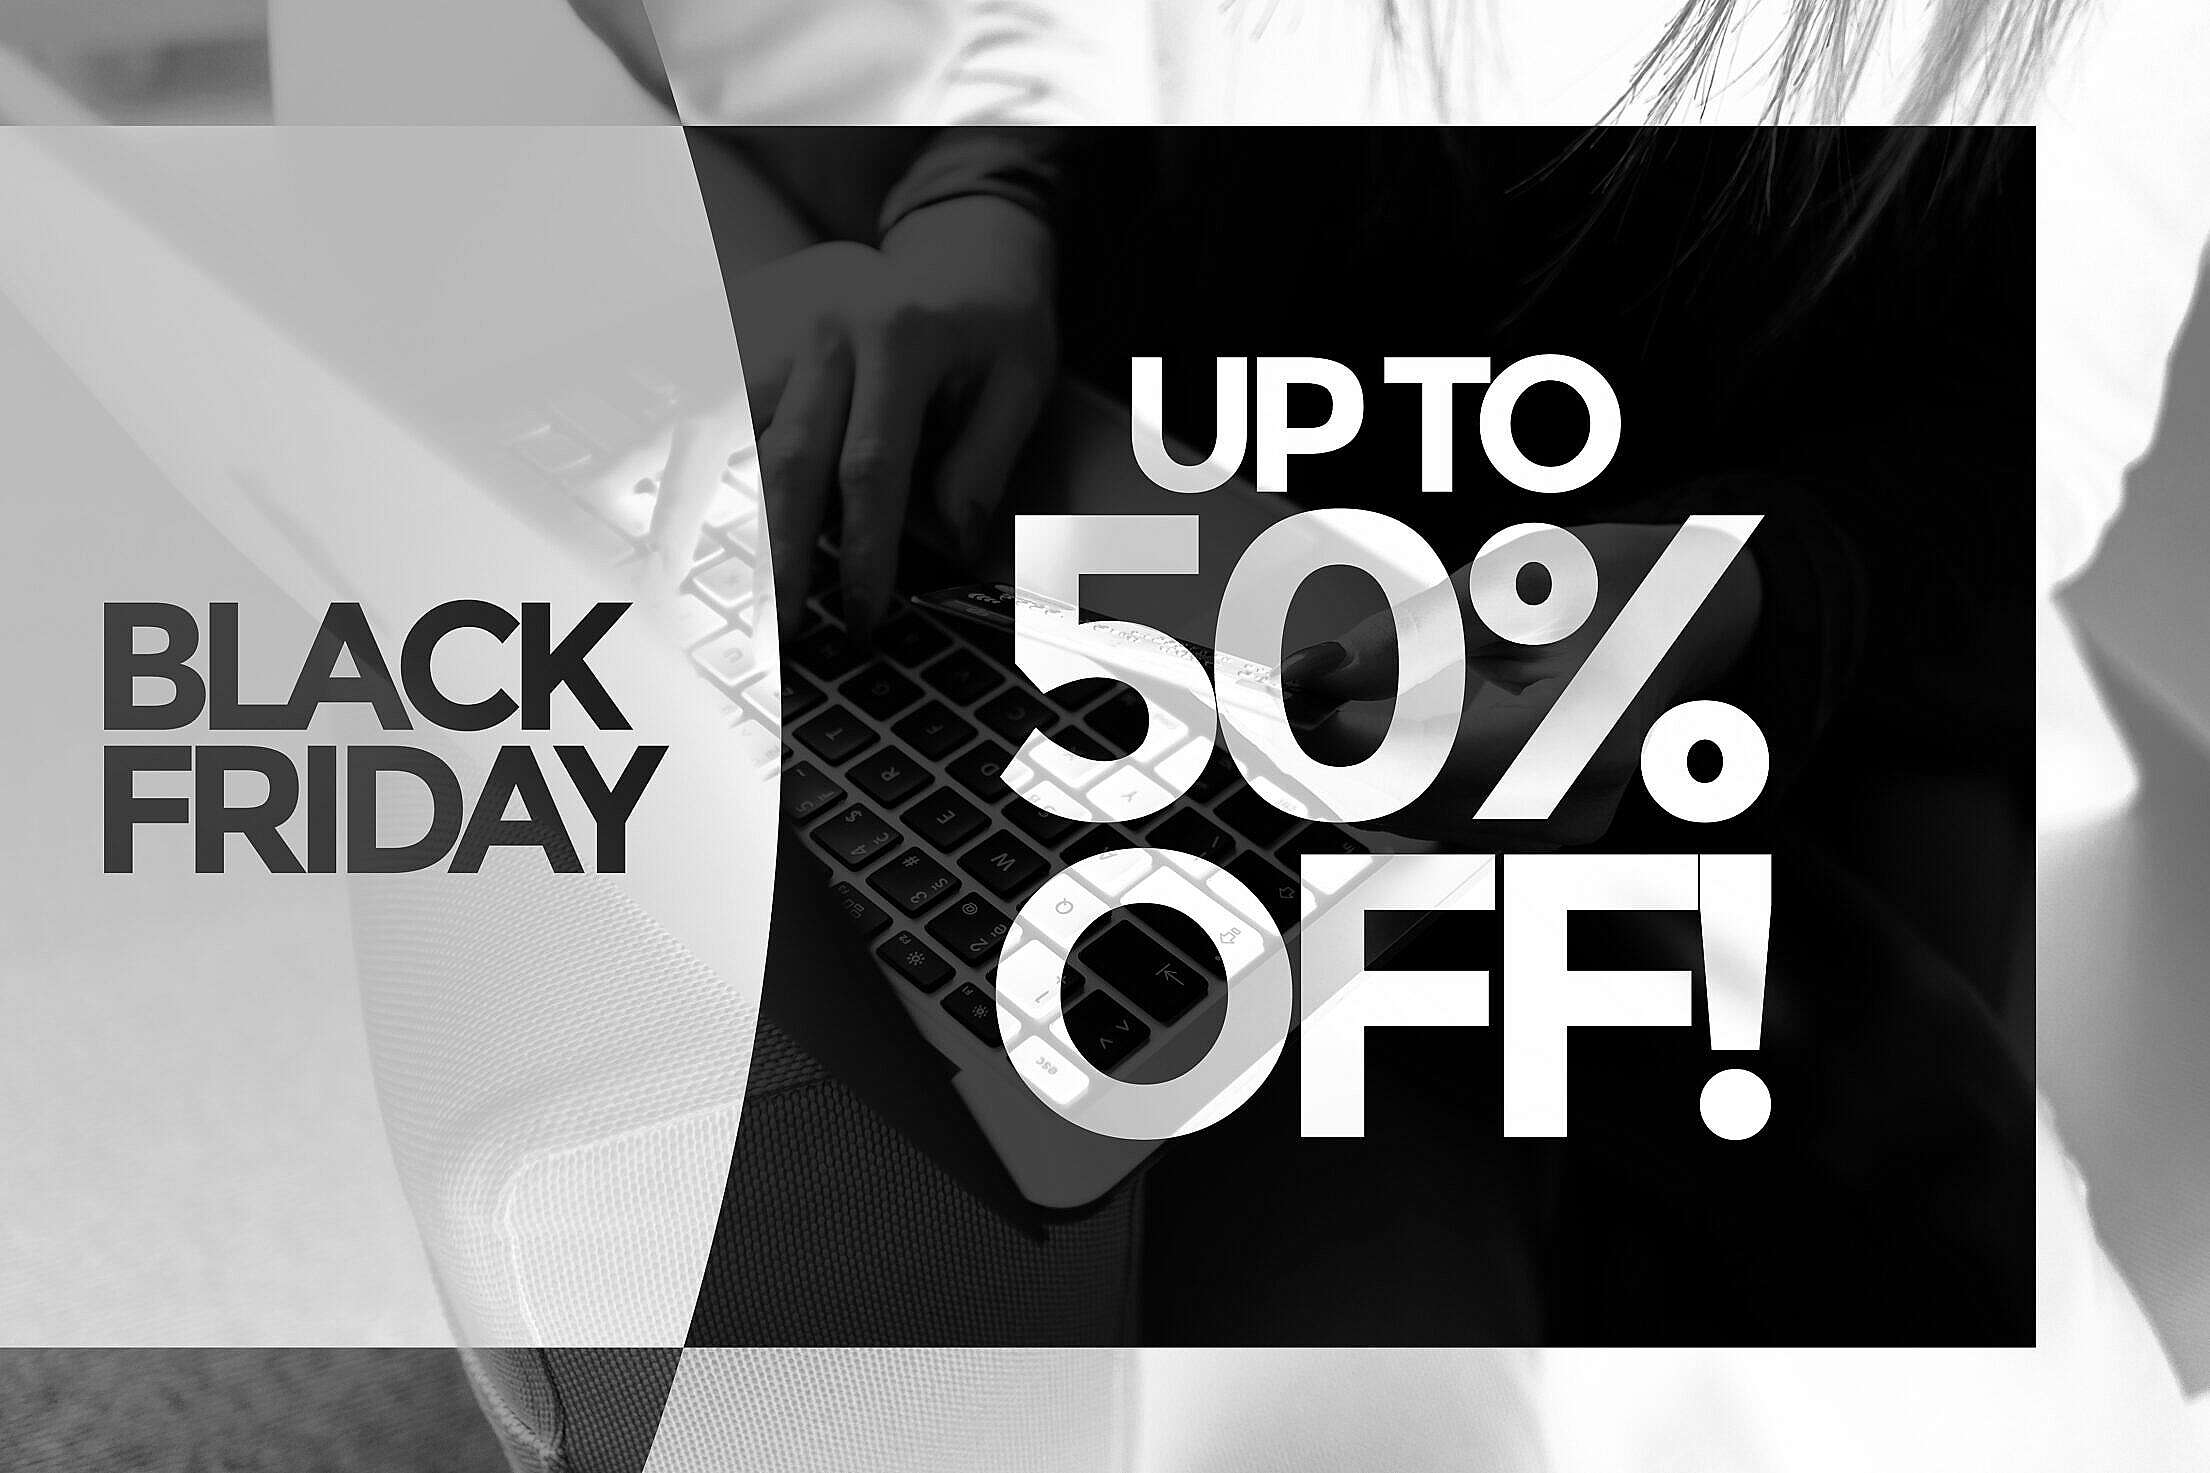 Black Friday UP TO 50% OFF Sale Visual Free Stock Photo